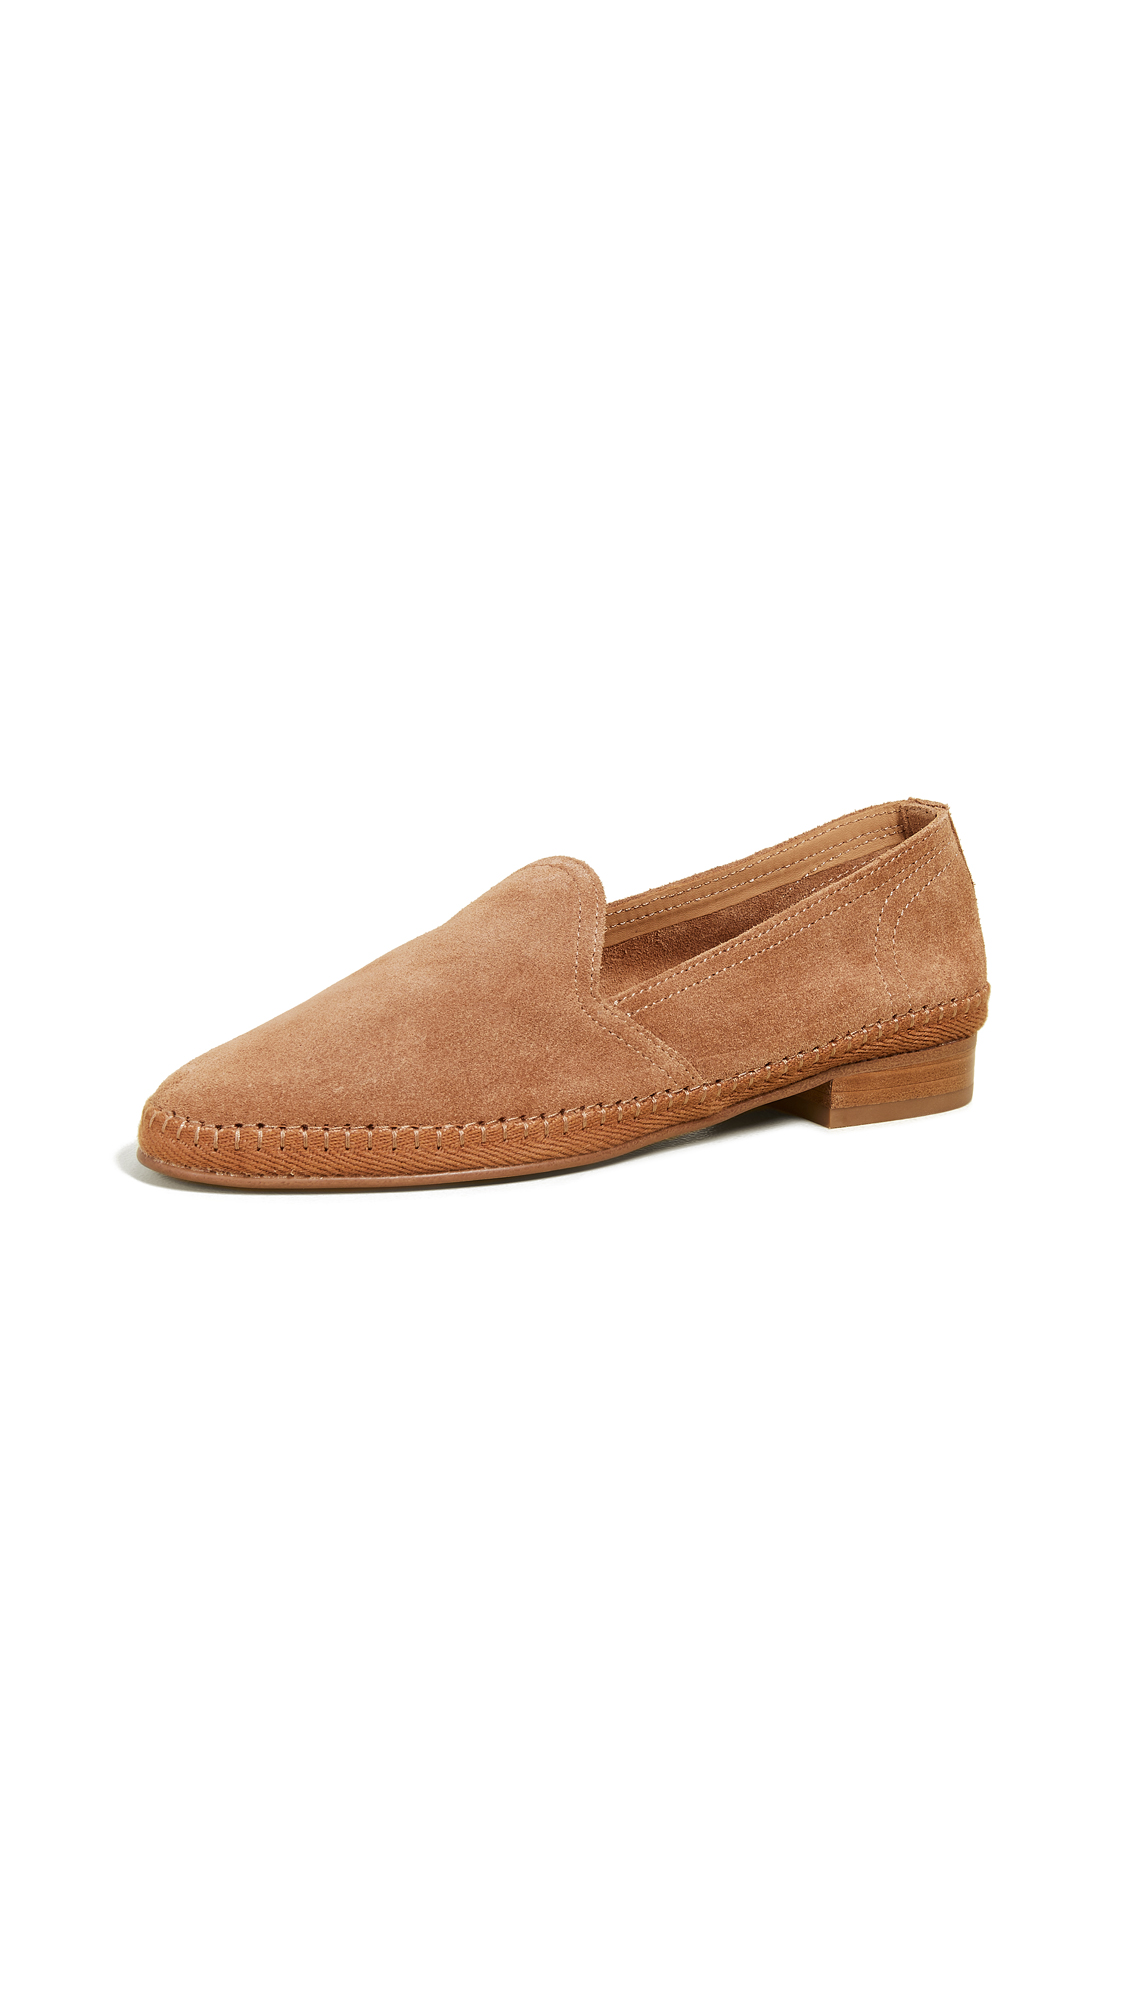 Soludos Venetian Loafers - Tan